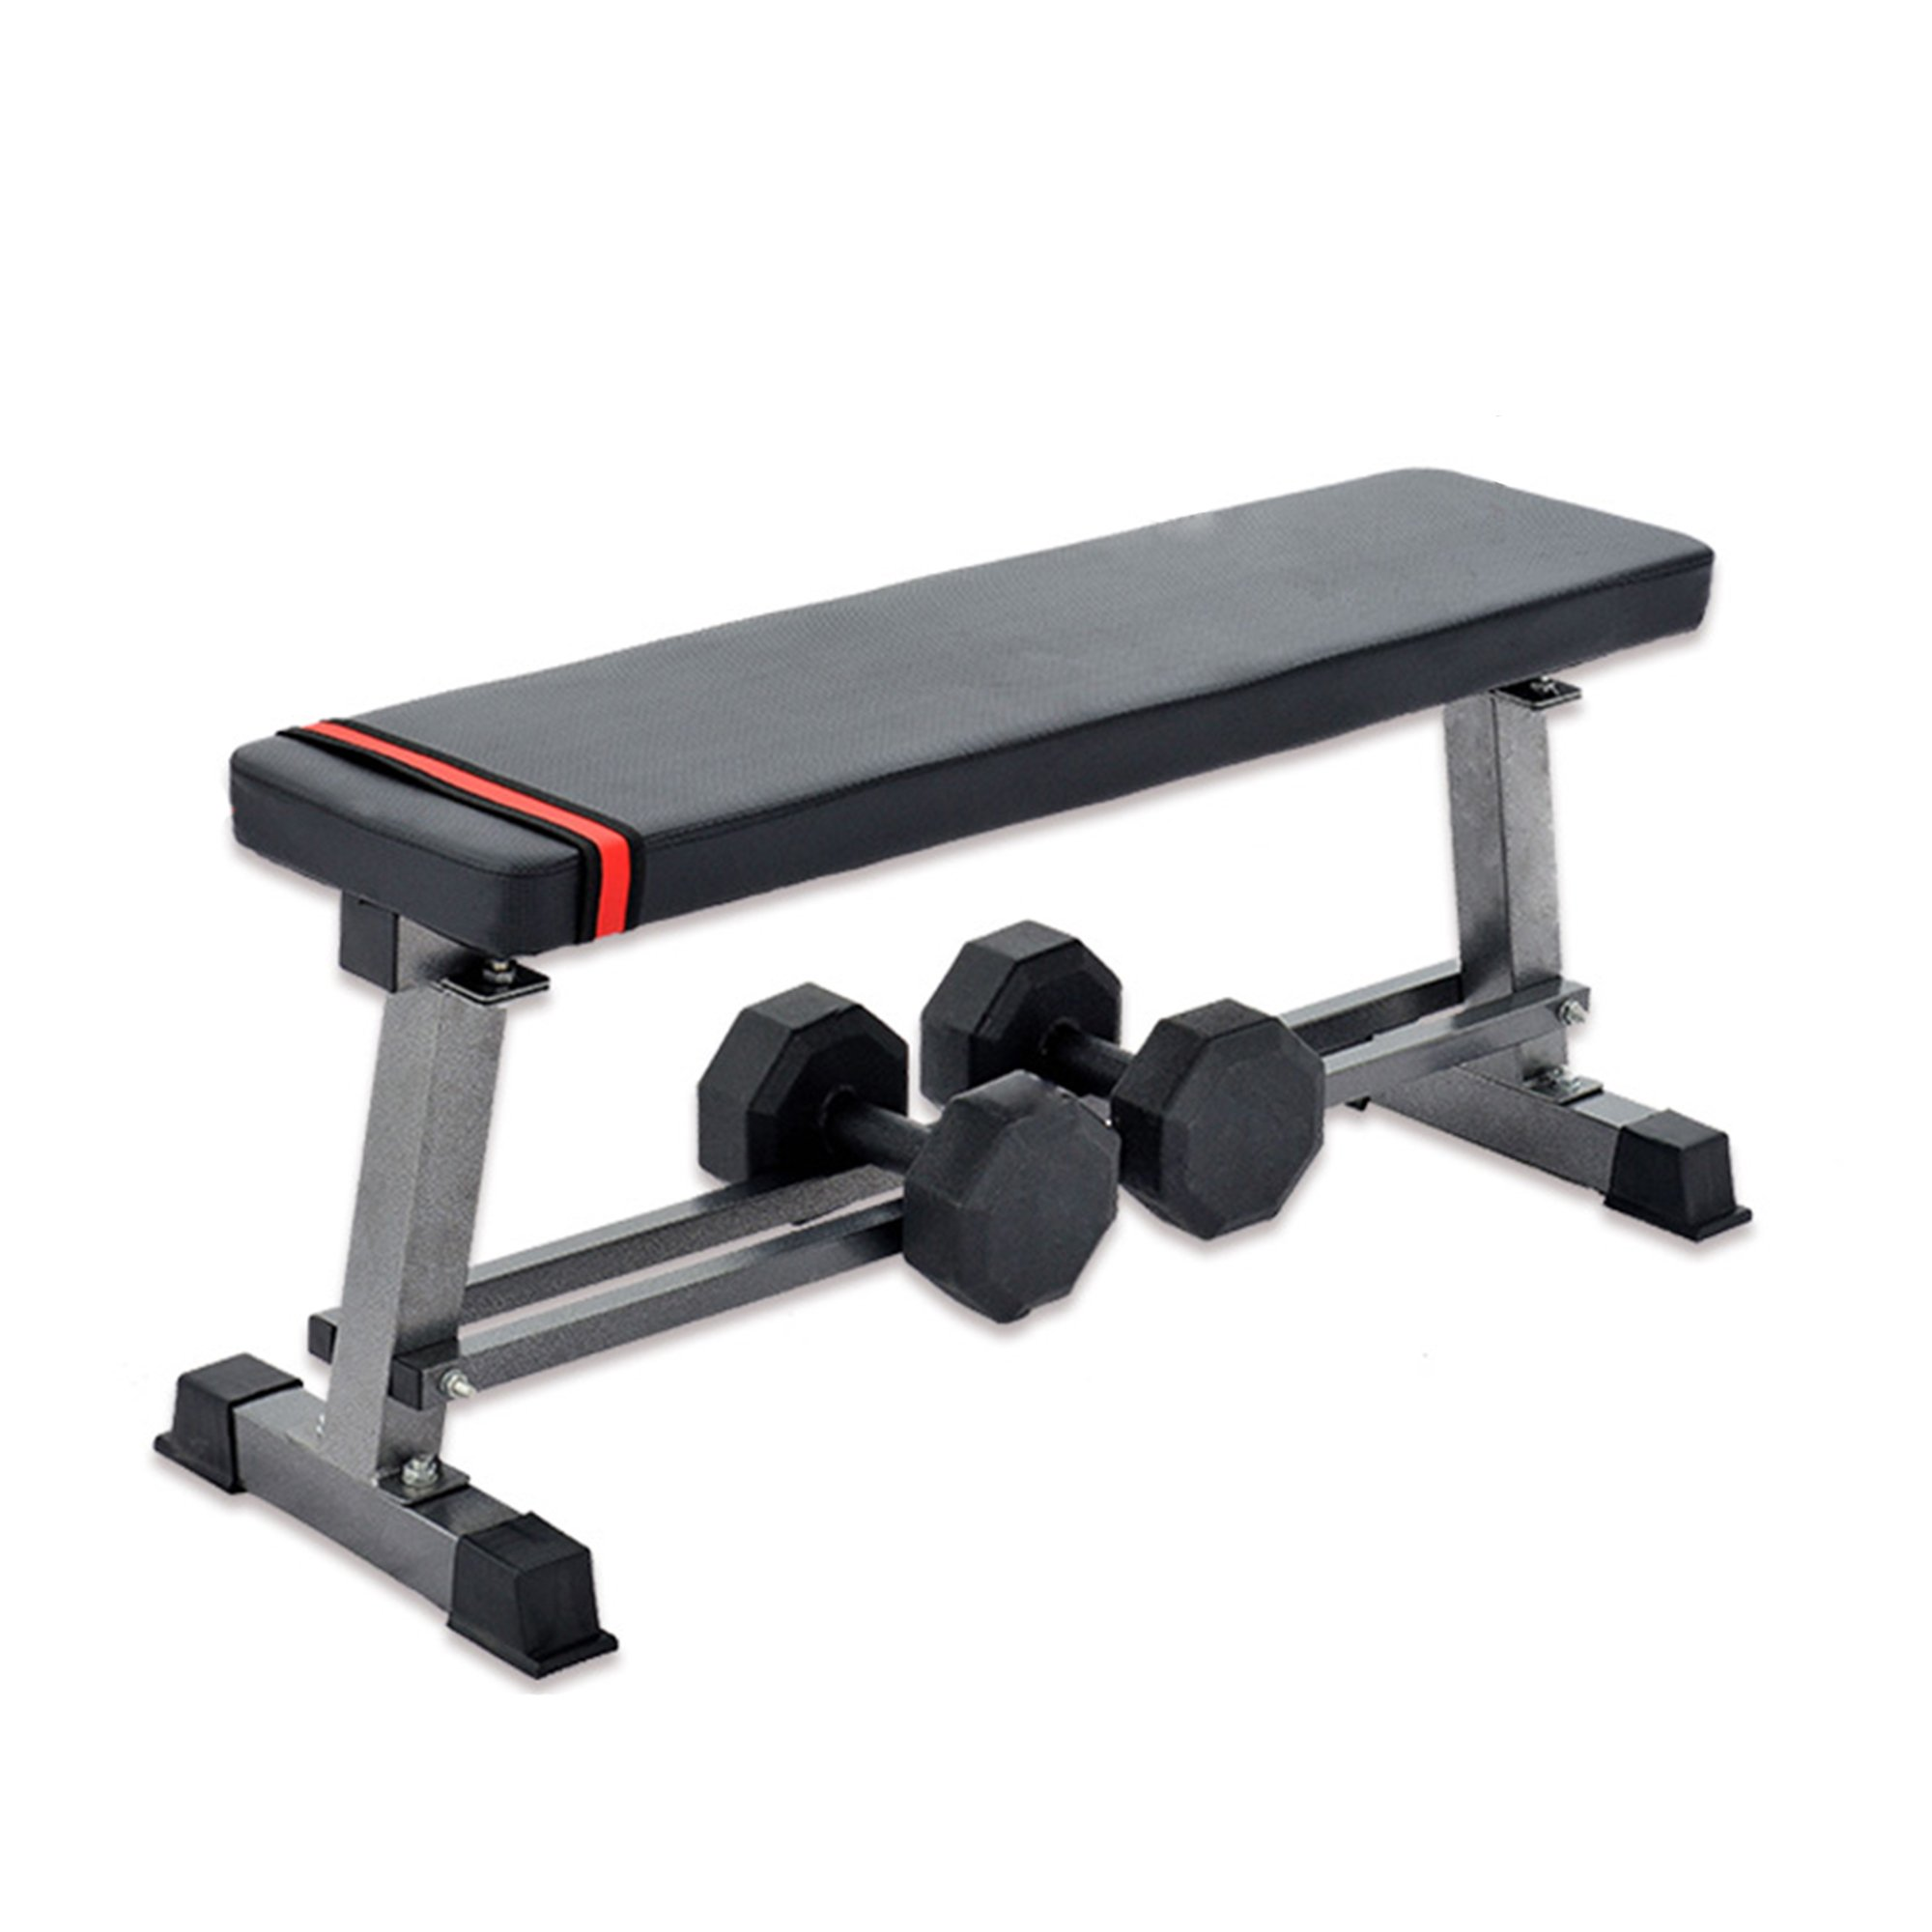 """Lucky Tree Flat Weight Bench with Bulit-in Barbell Storage Rack for Home Gym Fitness Training Ab Exercises Board Workout Benches, 660lbs Capacity,40.5""""Lx14.5""""Wx18""""H by Lucky Tree"""